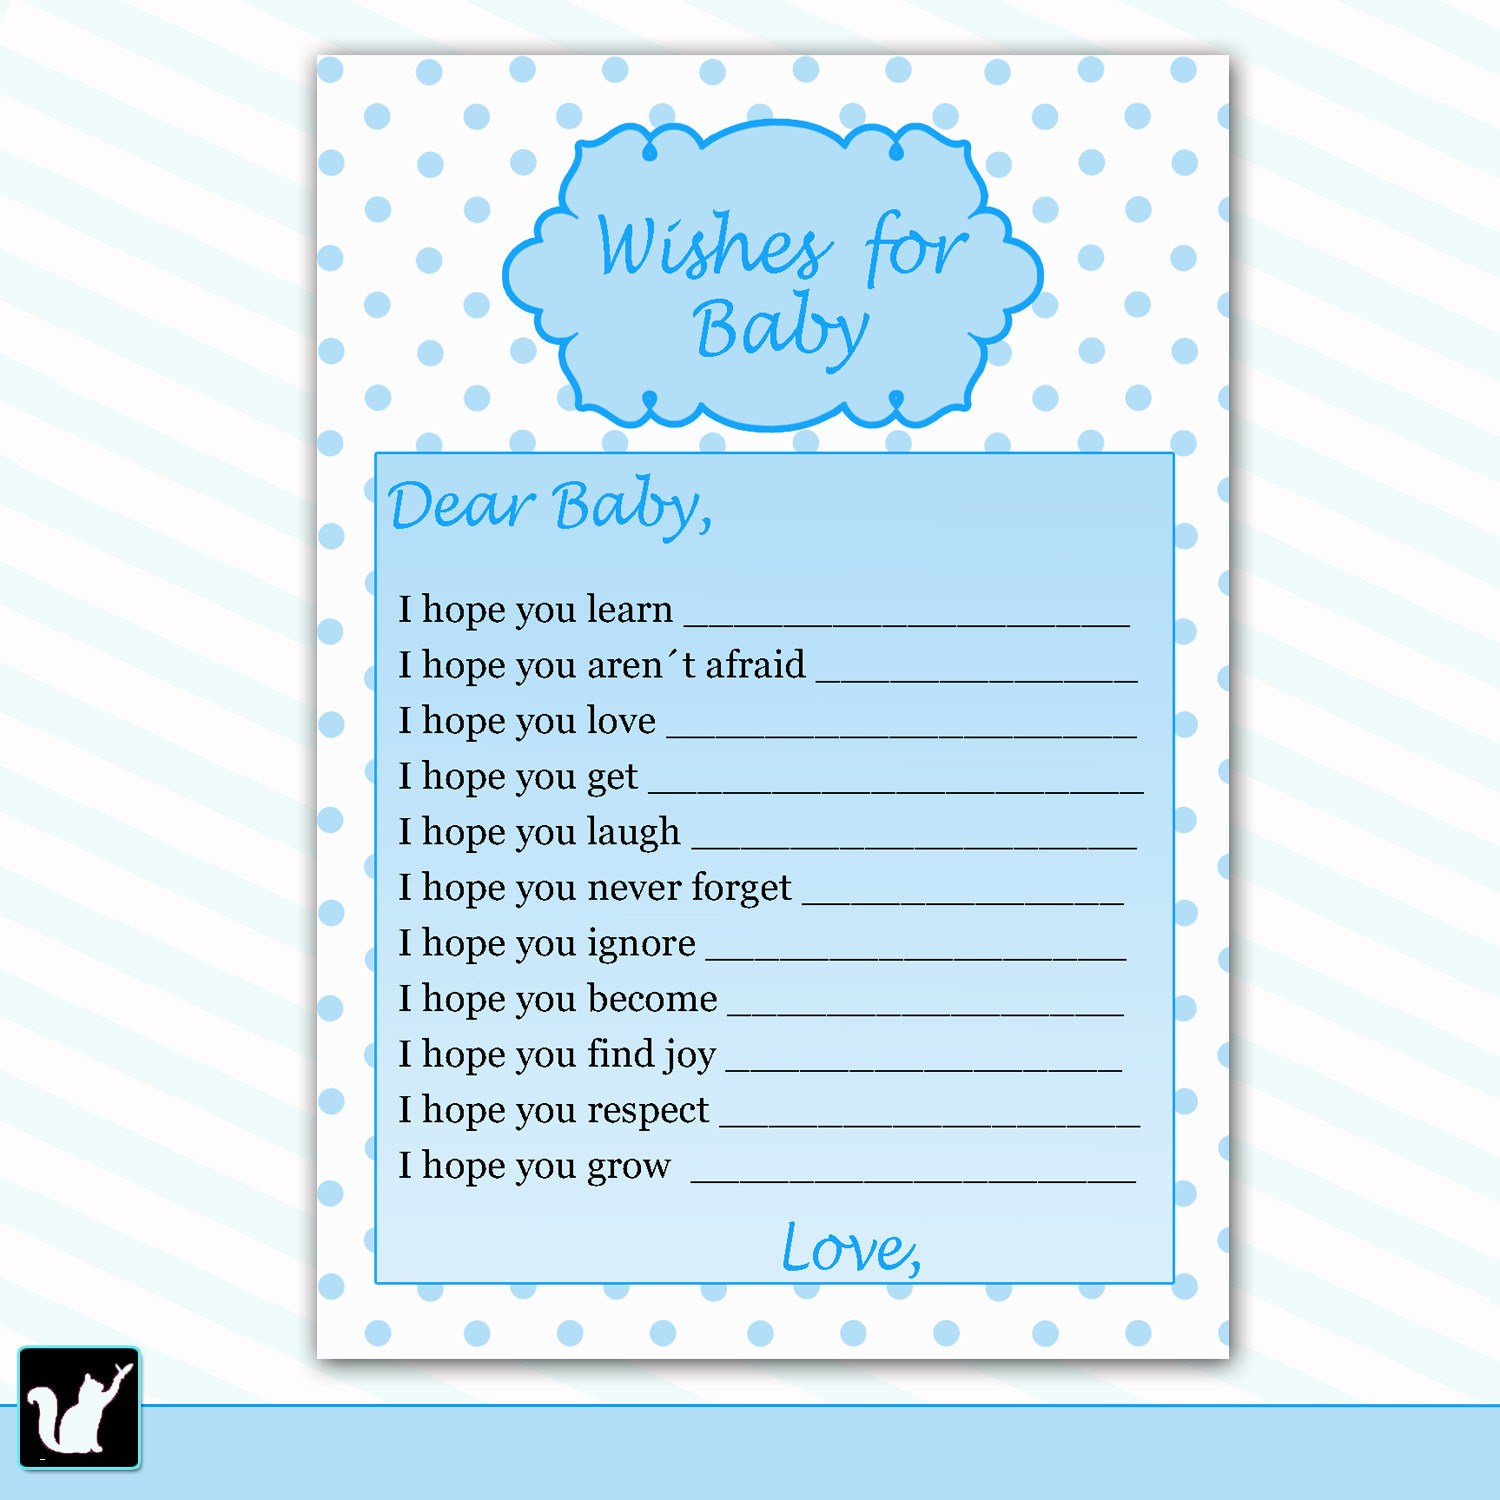 Full Size of Baby Shower:stylish Baby Shower Wishes Picture Inspirations Baby Shower Wishes Baby Shower Flowers Ideas Para Baby Shower Baby Shower Centerpieces Baby Shower Para Niño Baby Shower Rentals Baby Shower Paper Old Baby Shower Greeting Cards Baby Shower Well Wishesfor Card Boy